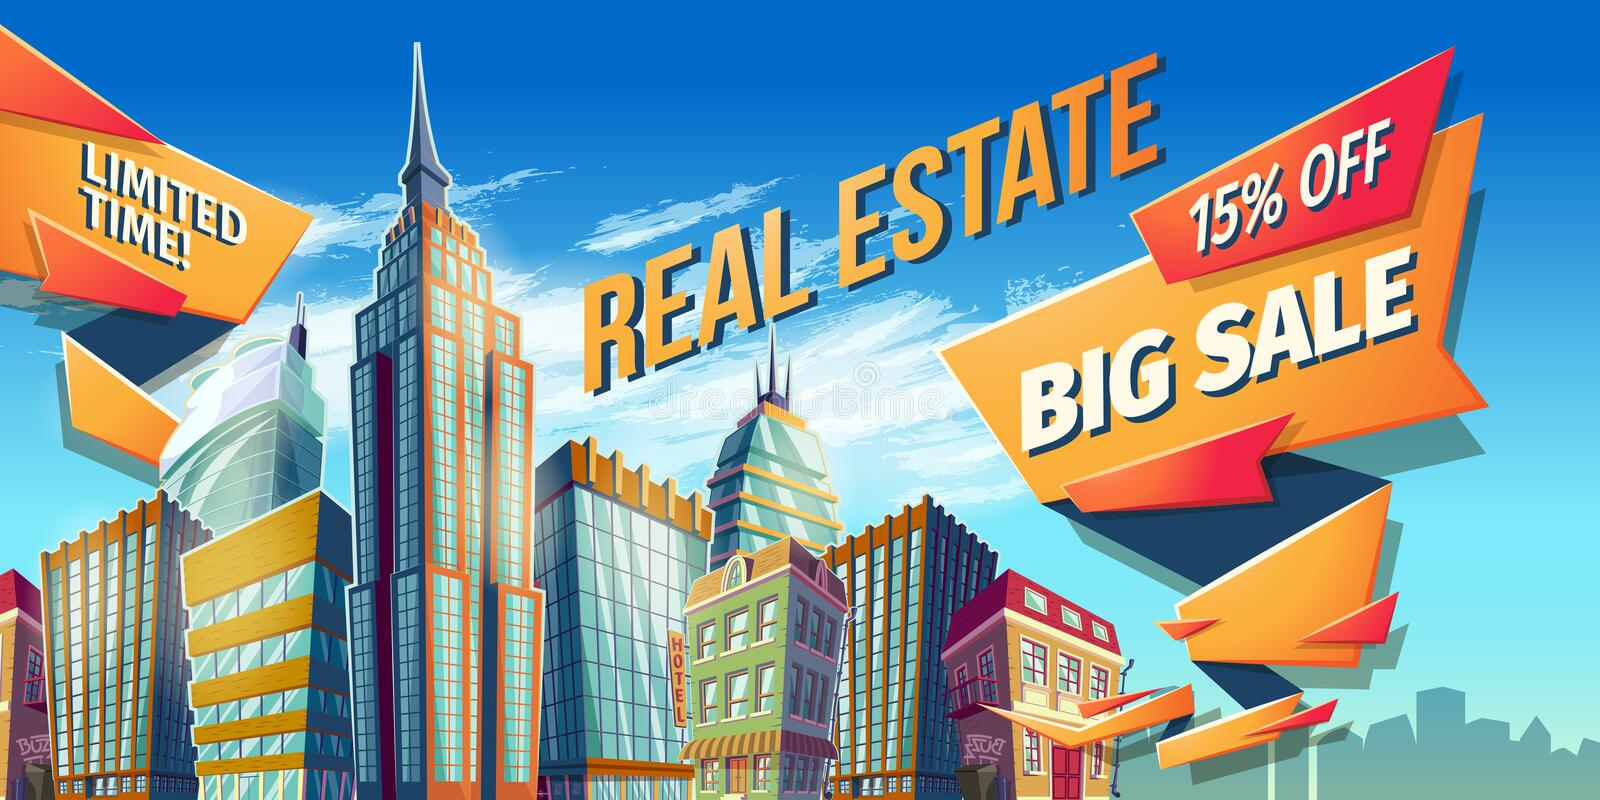 Vector cartoon illustration, banner, urban background with modern big city buildings stock illustration